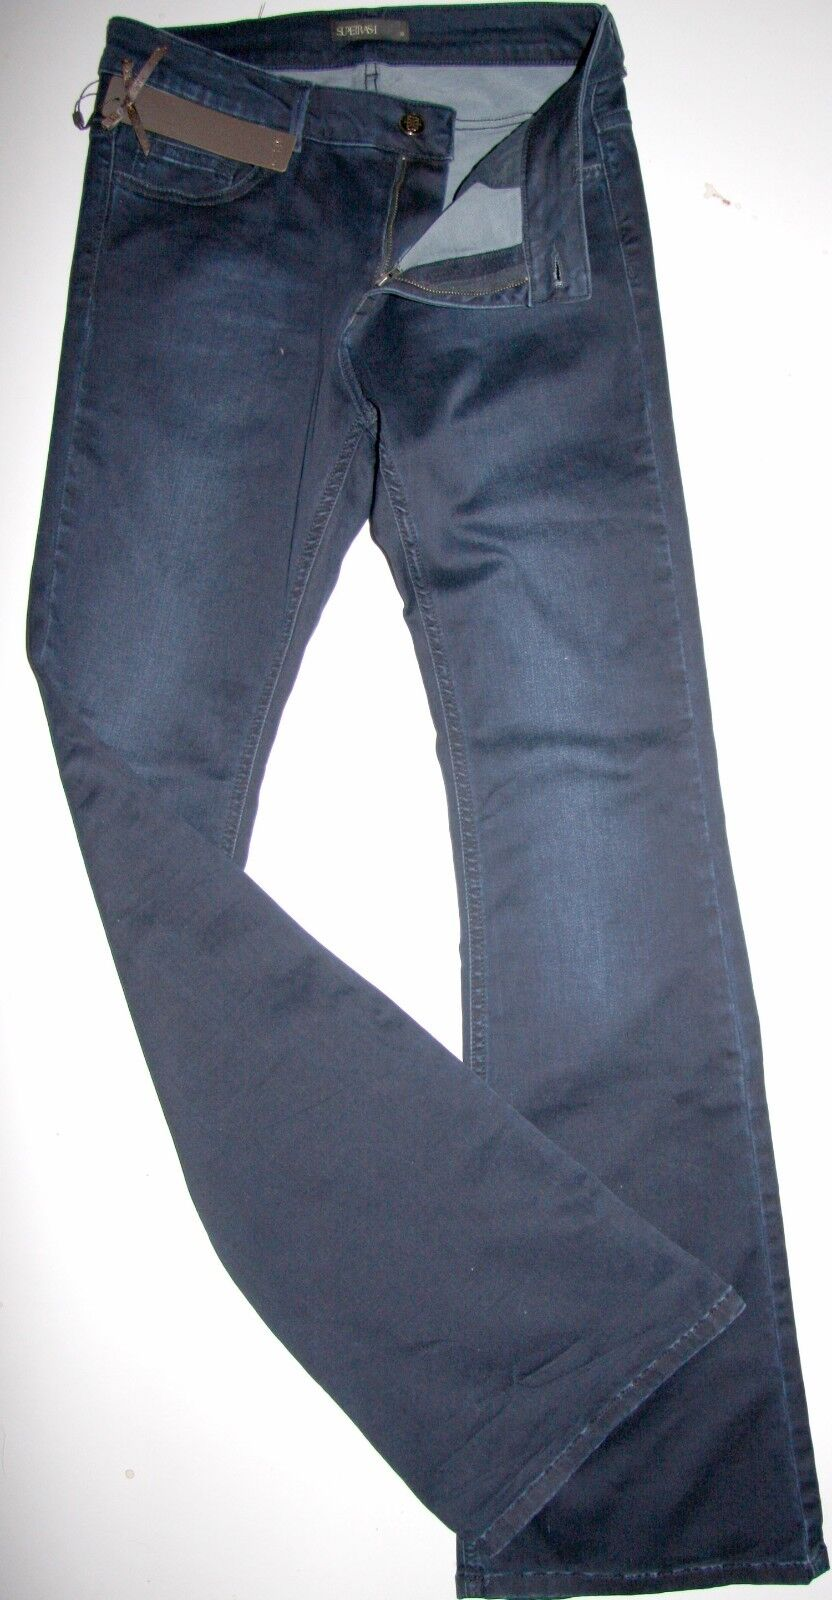 Denim Pants Jeans Hose  Supertrash  Pinny  bluee Used  weites Bein  Size 32 Neu